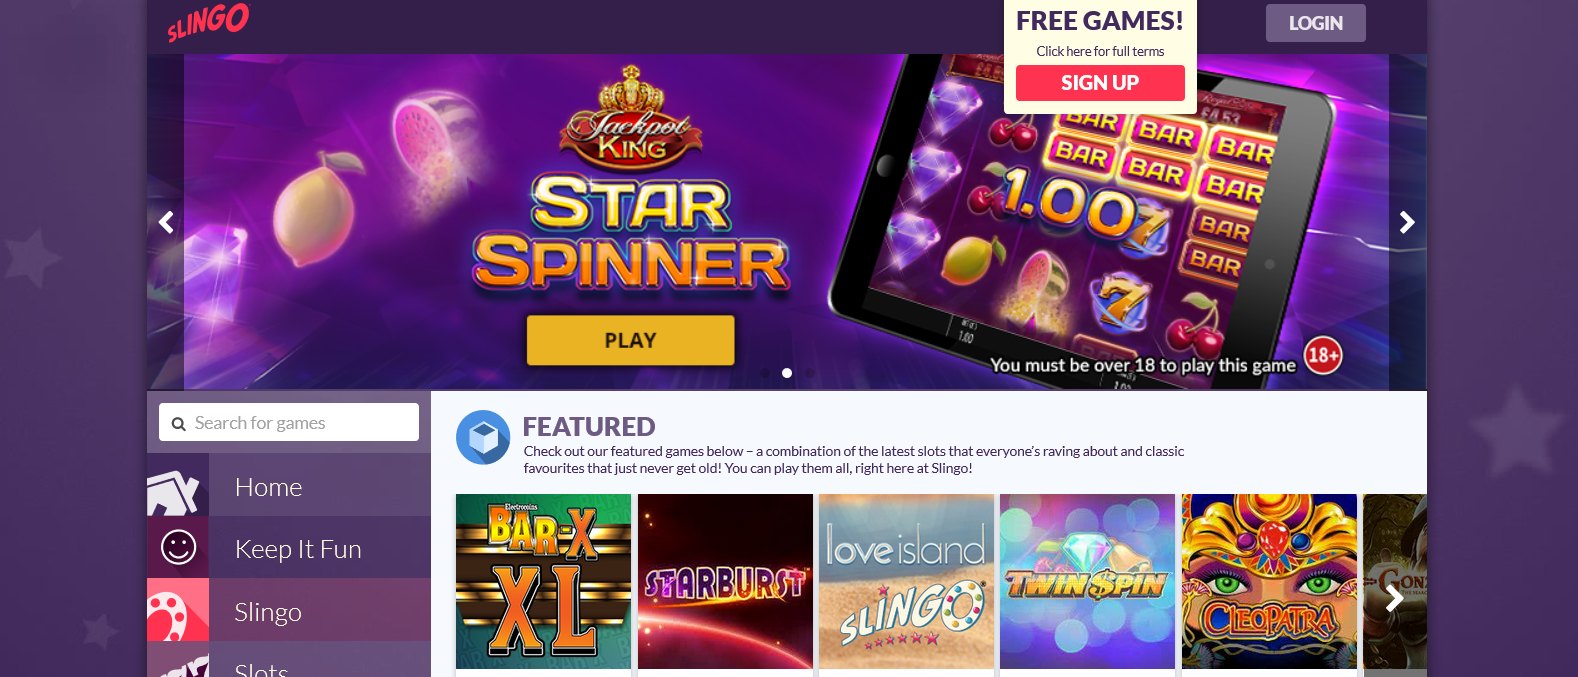 Spin and win money now